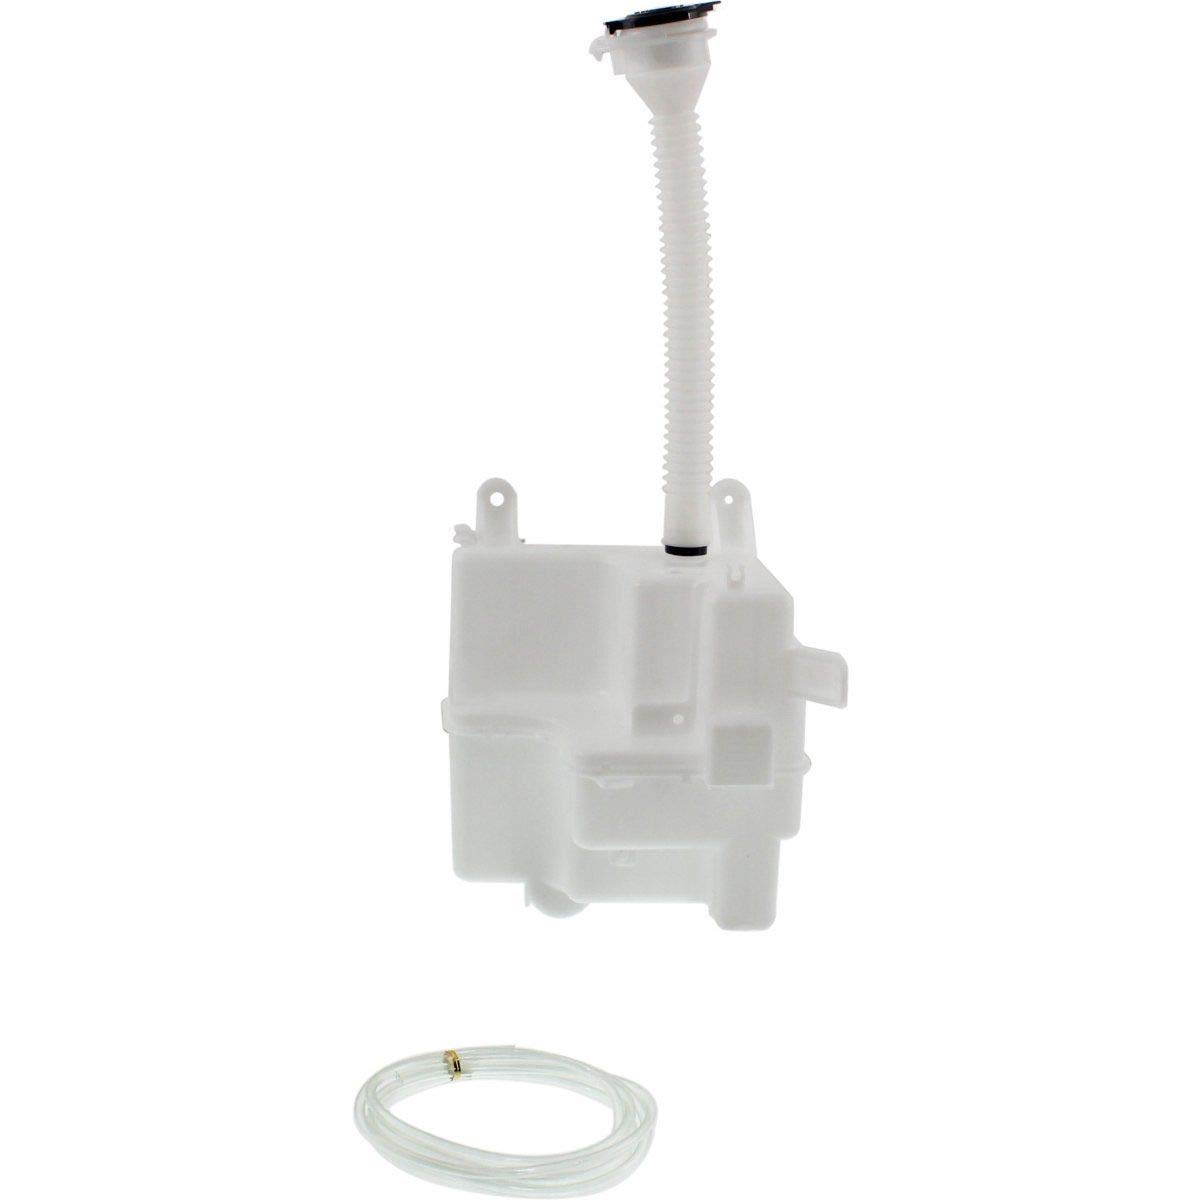 Washer Reservoir For 2004-2006 Lexus RX330 With Pump by Parts Galaxy